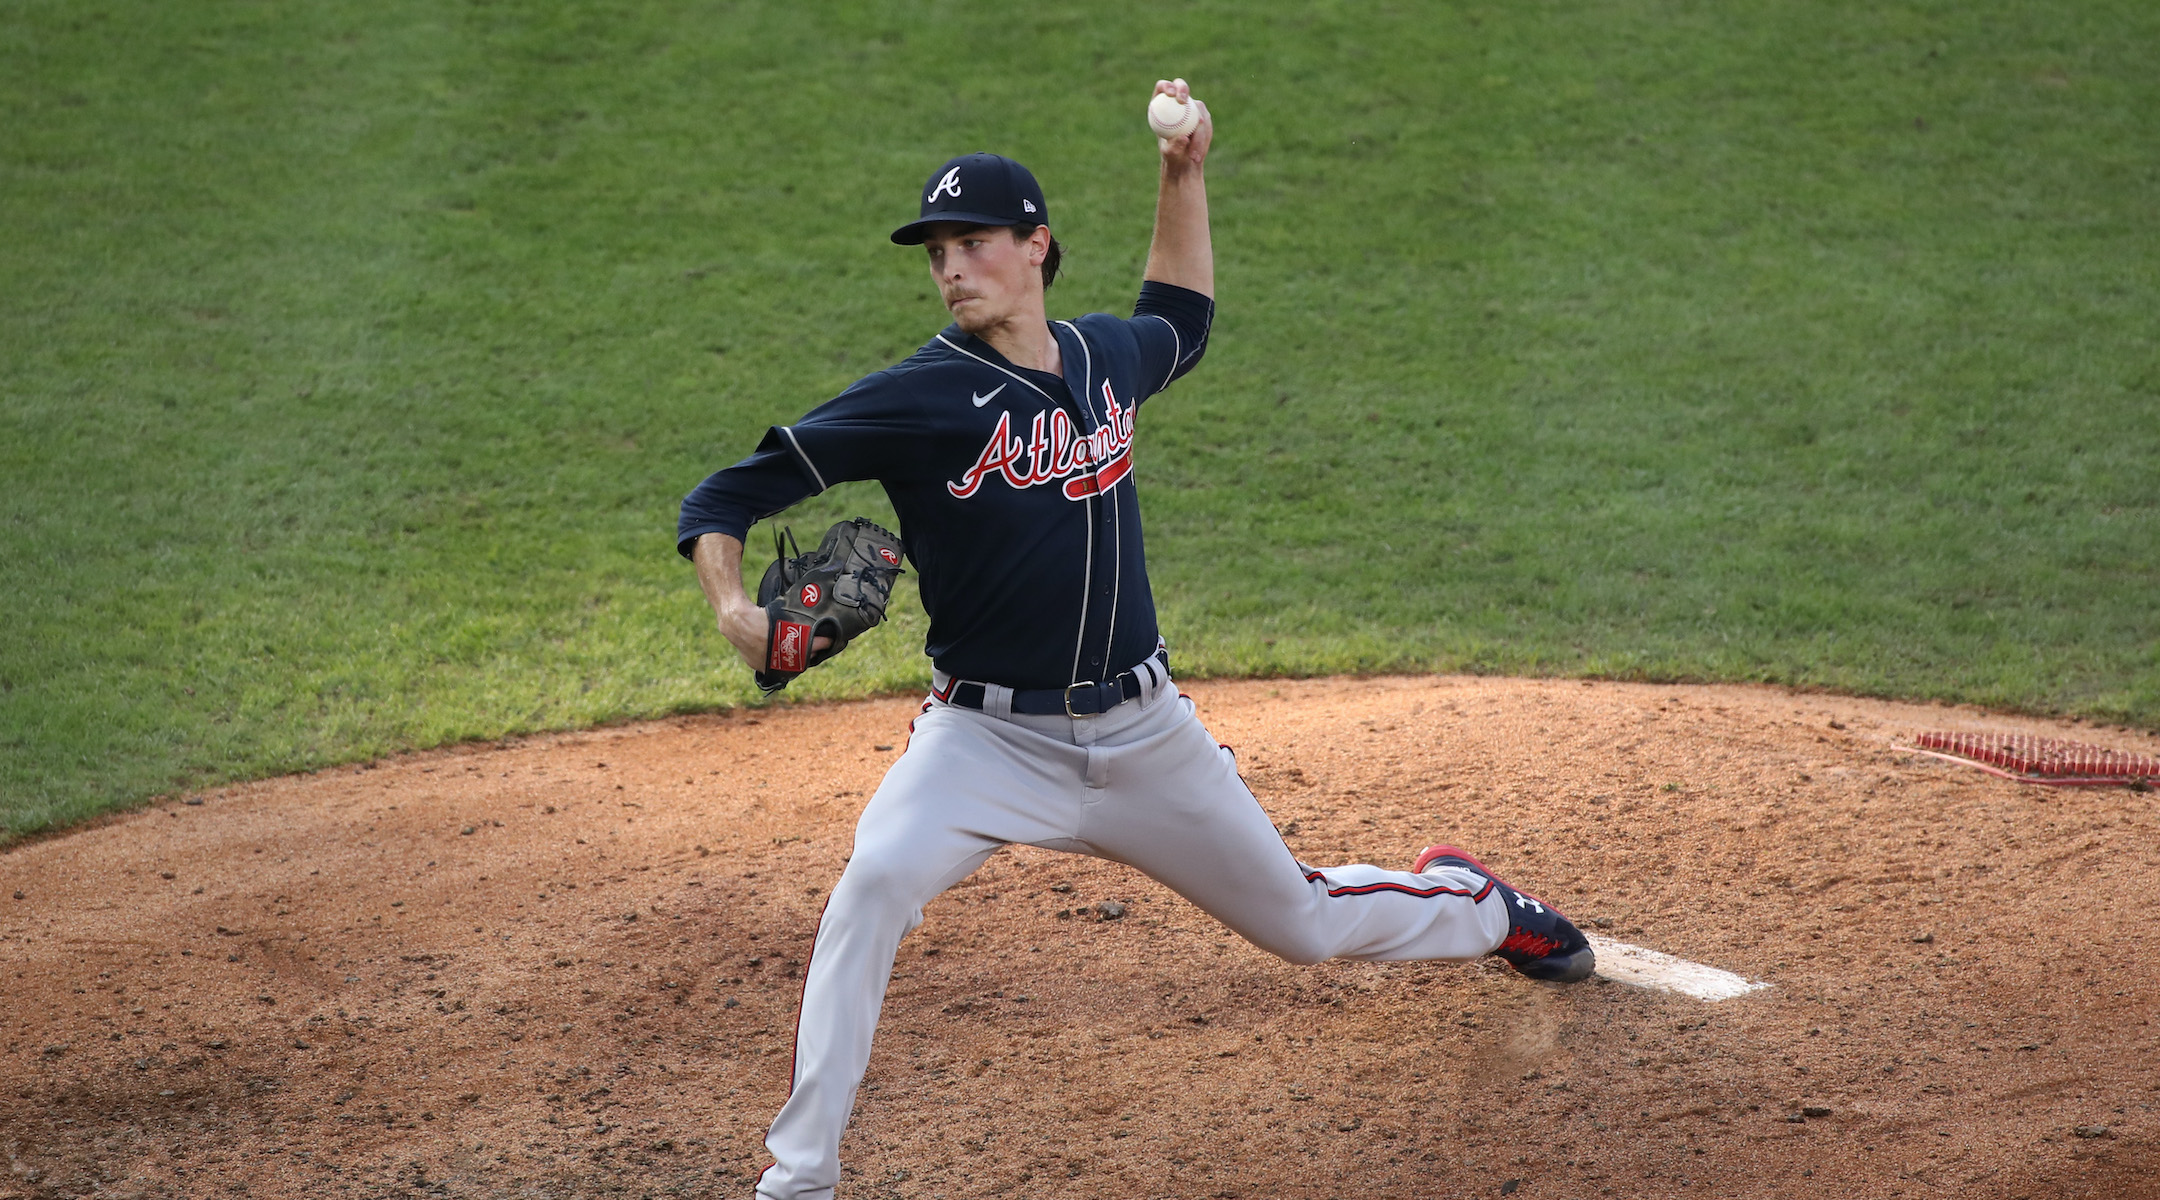 Max Fried pitches in a game for the Atlanta Braves against the Philadelphia Phillies at Citizens Bank Park in Philadelphia, Aug. 9, 2020. (Photo/JTA-Kyle Ross-Icon Sportswire via Getty Images)